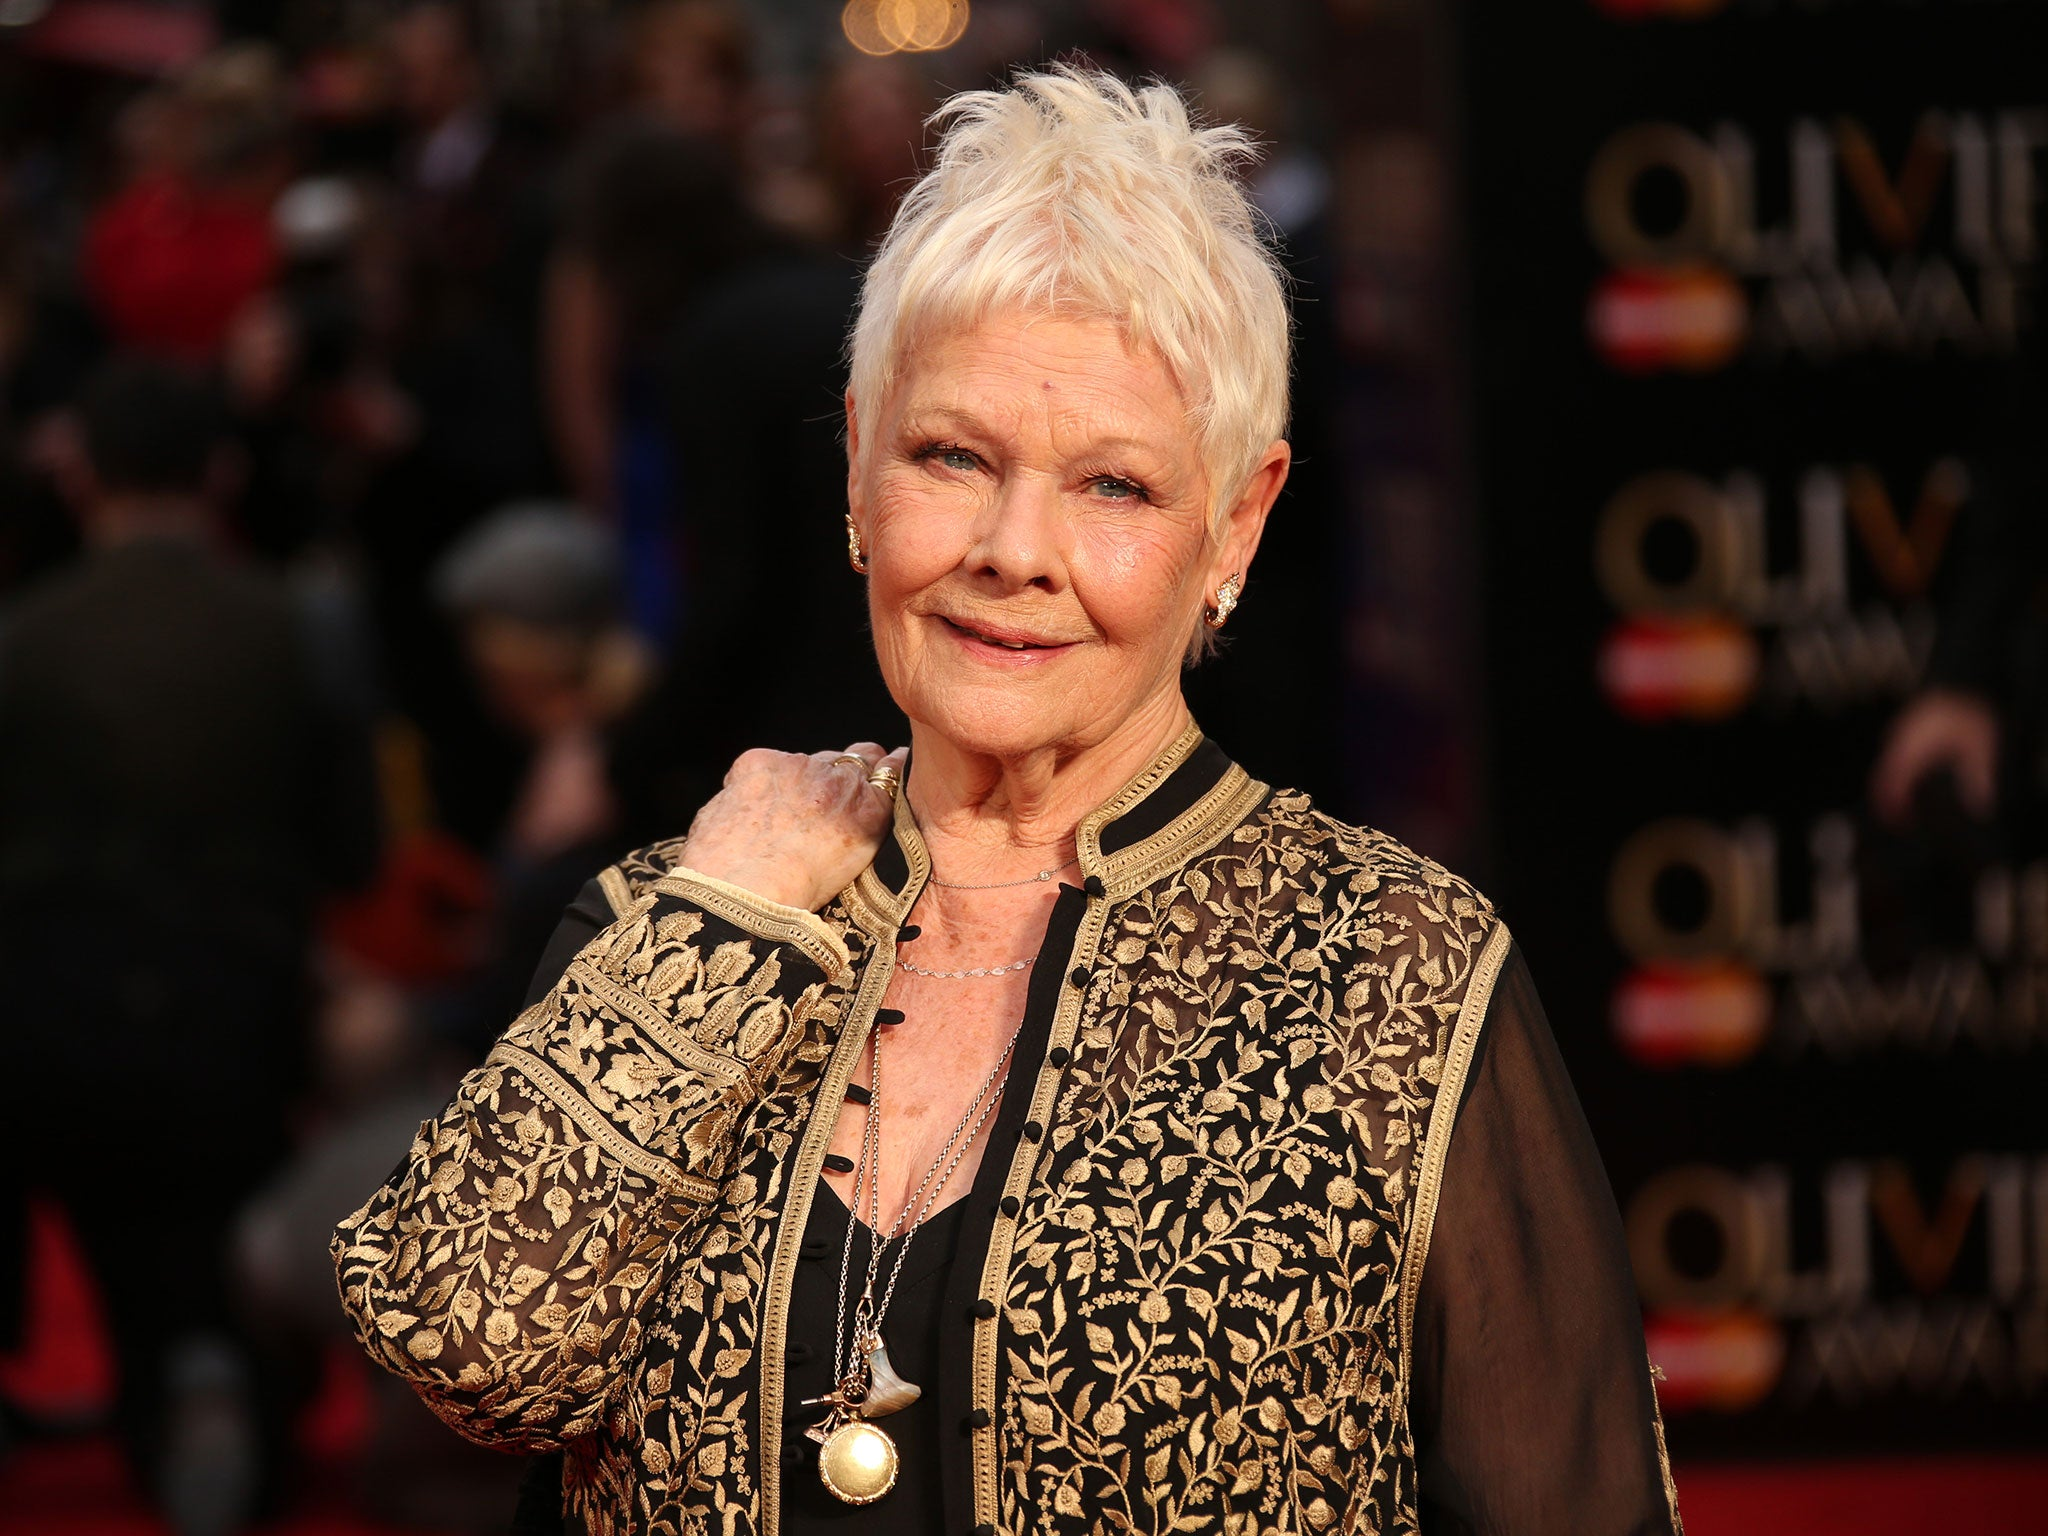 Judi Dench: photos, filmography, biography and details of his personal life 45